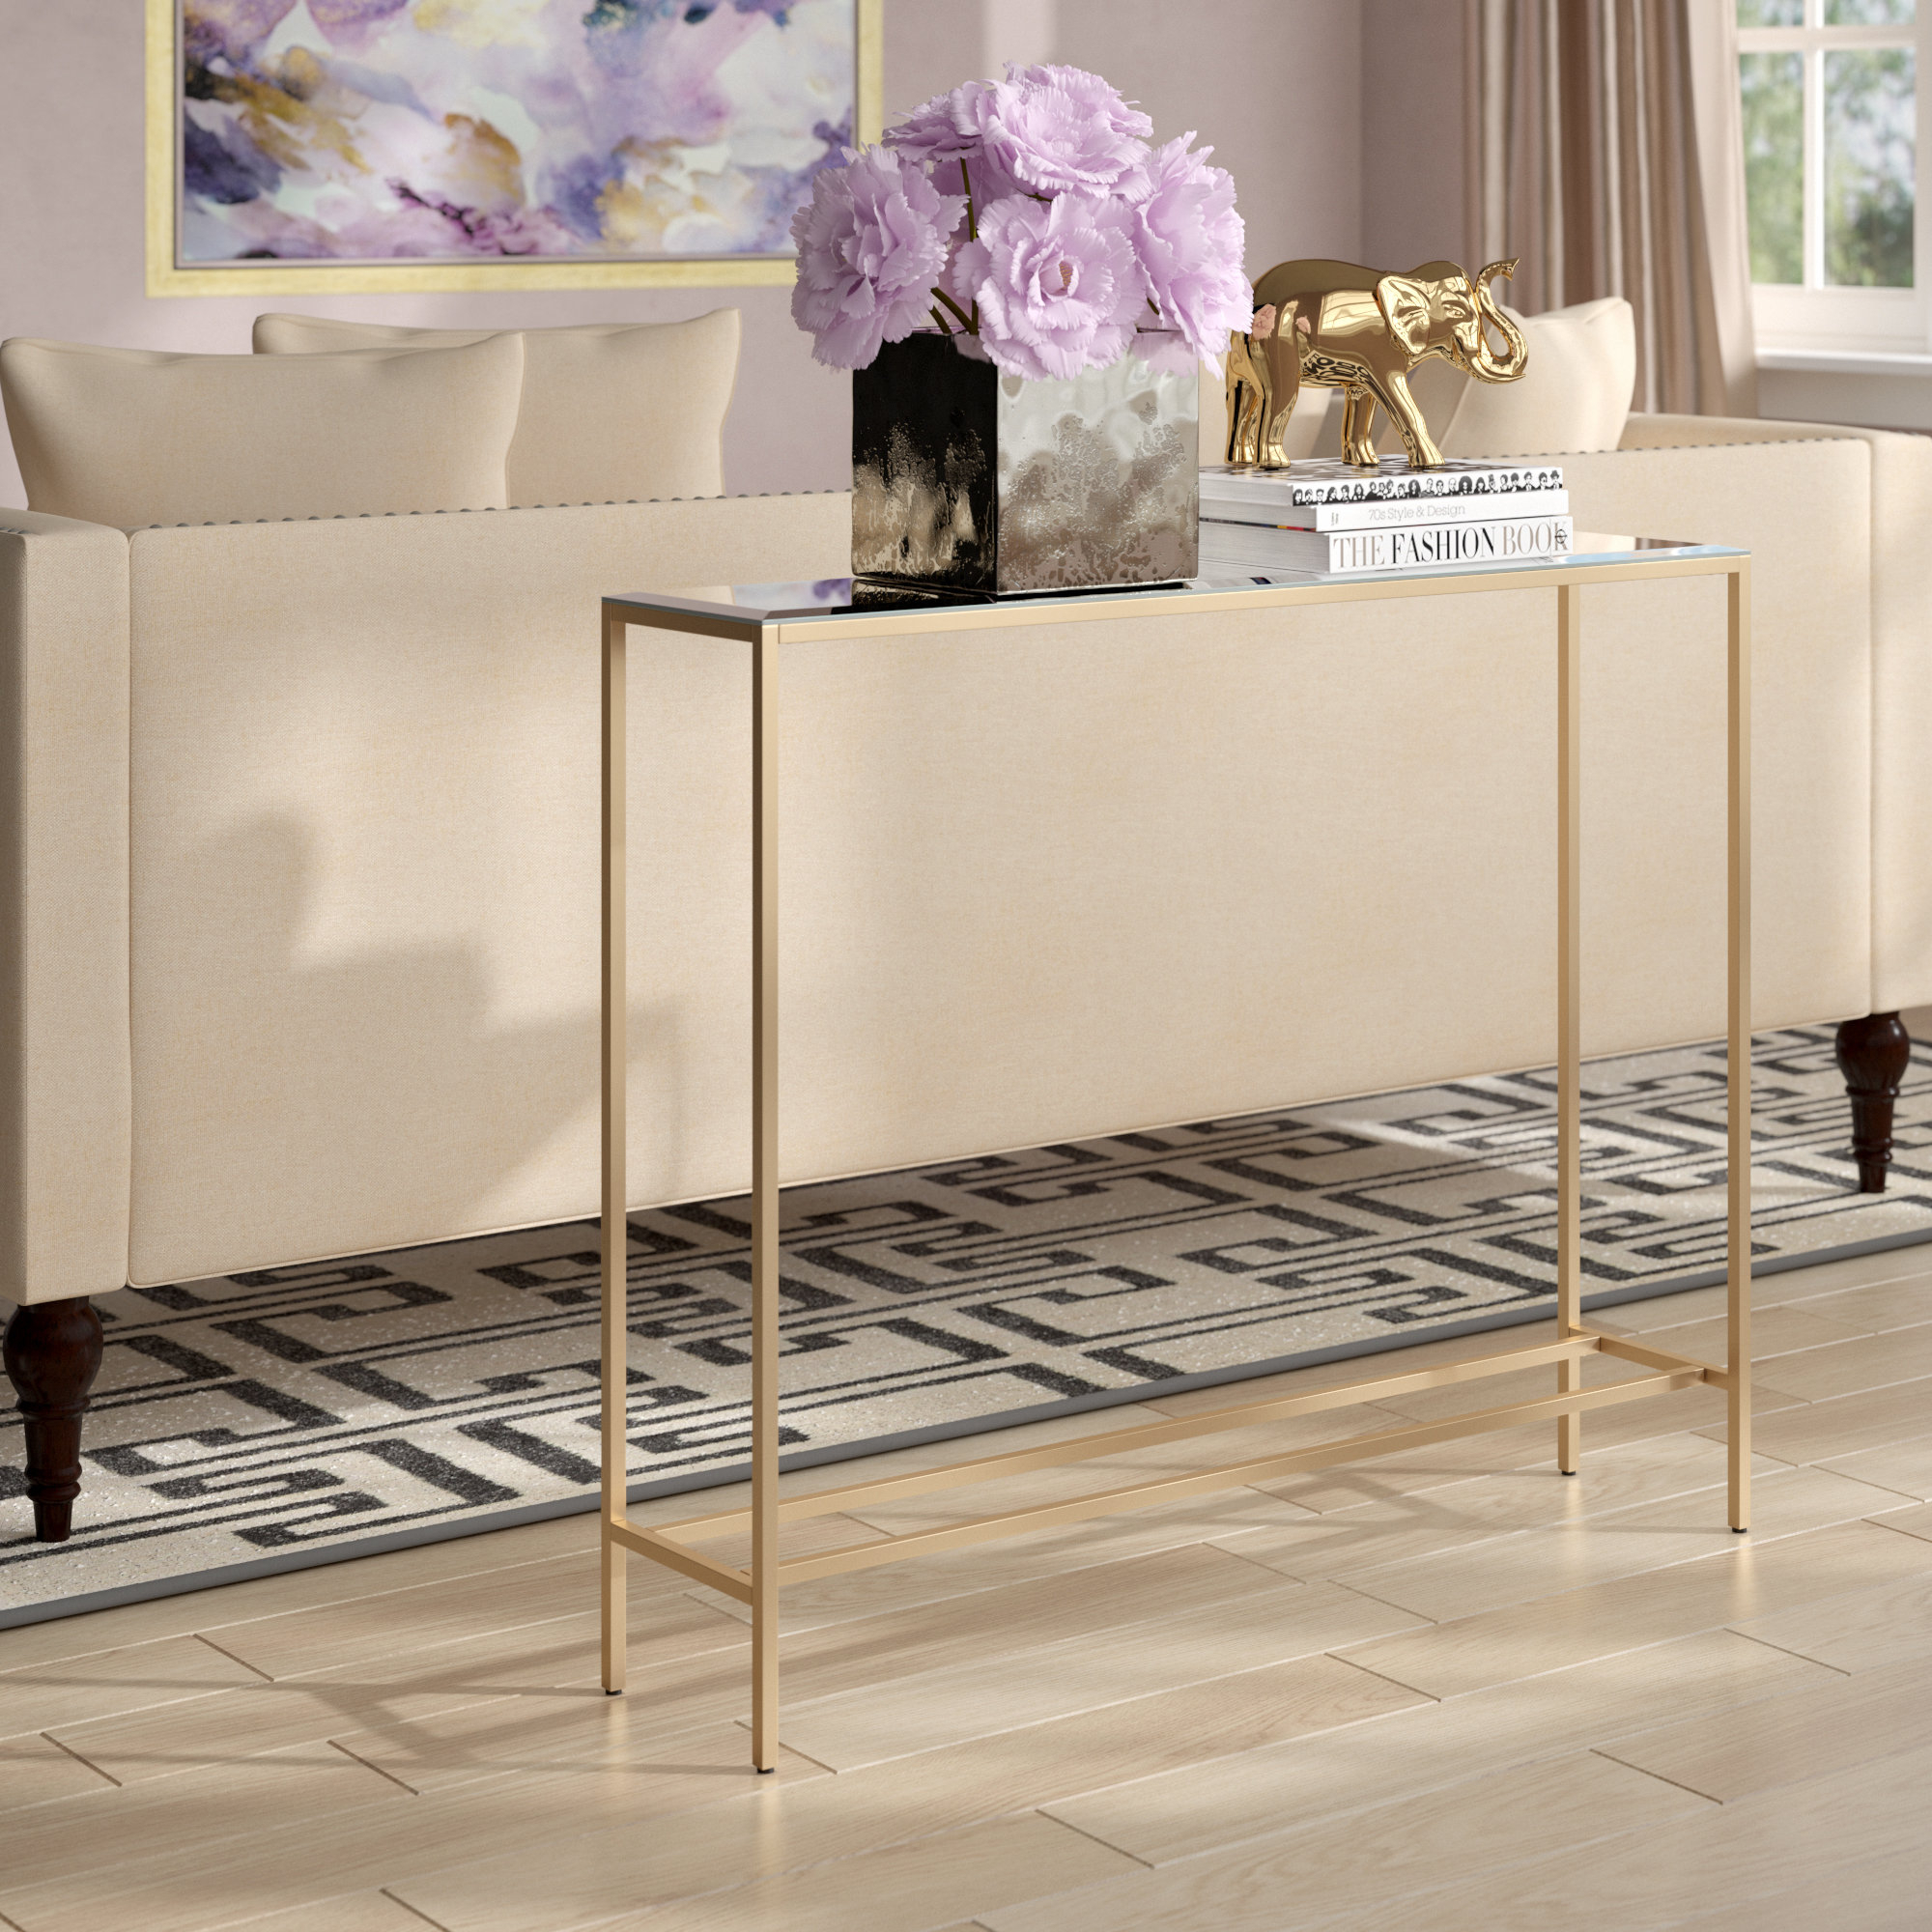 Narrow Console Tables You'll Love | Wayfair Within Layered Wood Small Square Console Tables (View 2 of 30)